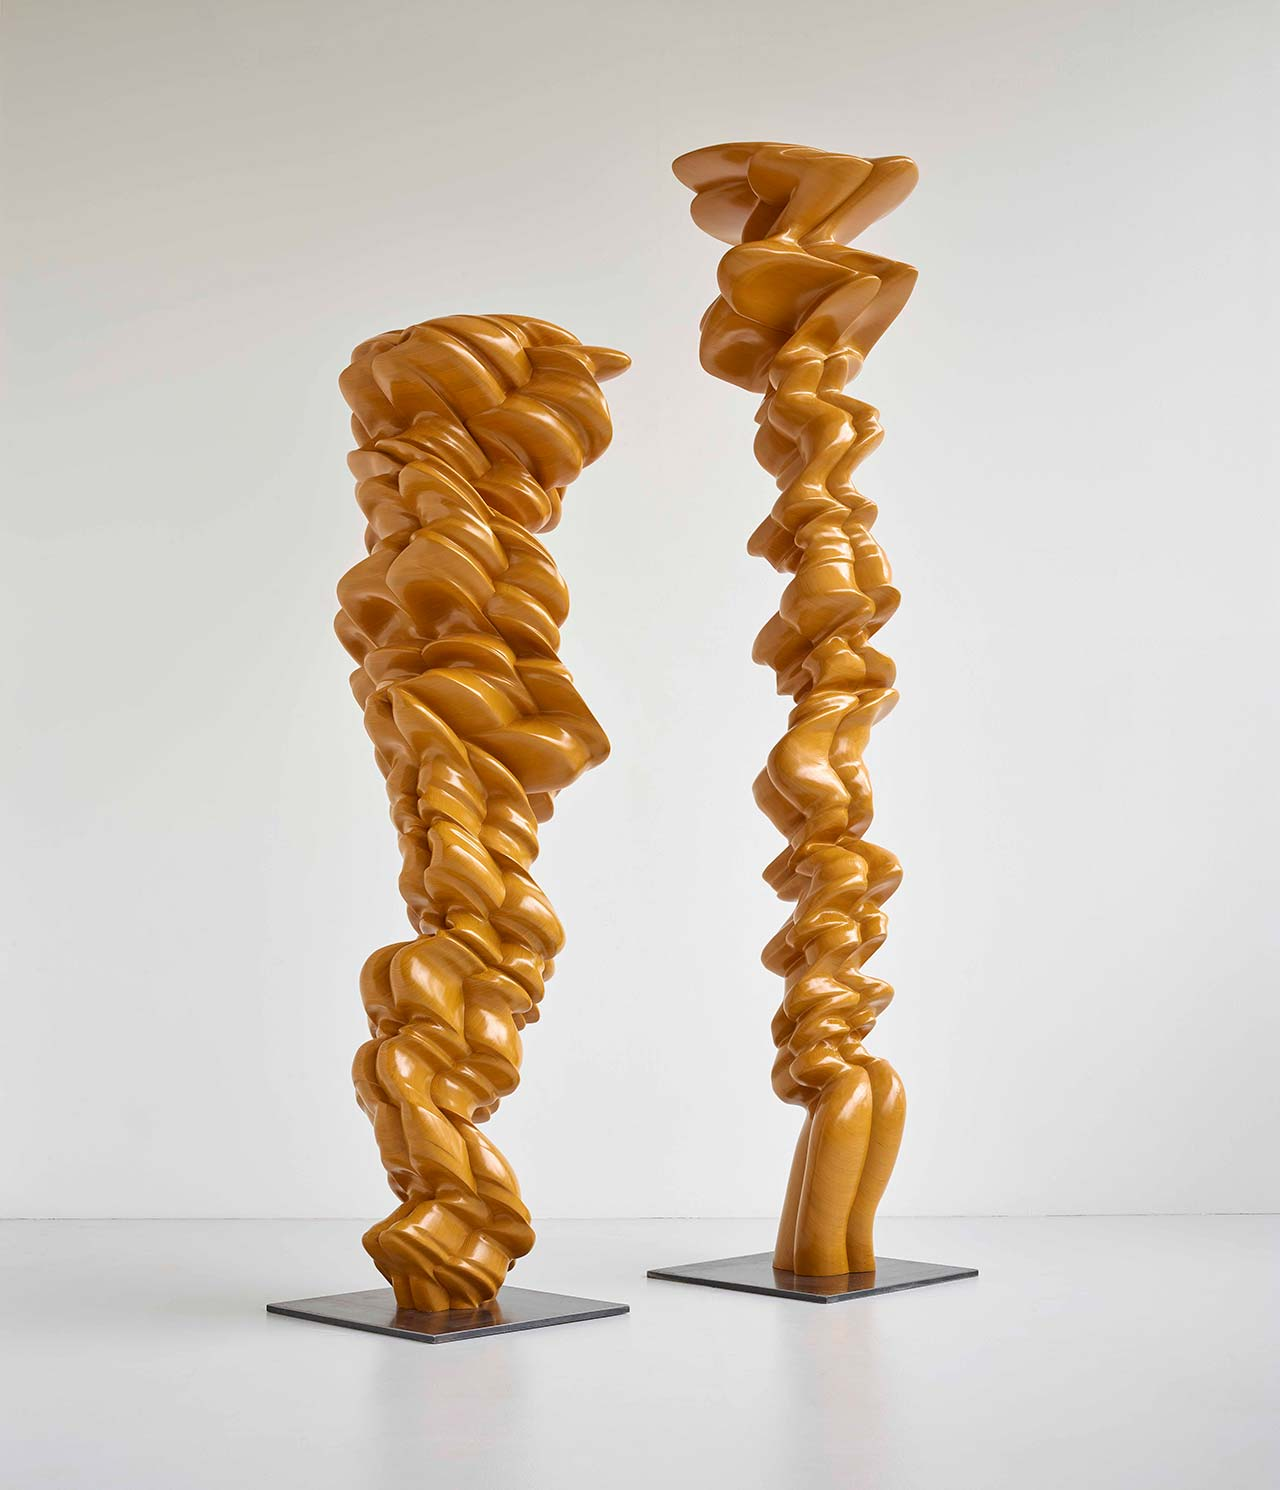 Tony Cragg, Pair, 2014. Wood, 410 x 99 x 76cm, 329 x 92 x 127cm. Photo by Michael Richter. © VG Bild-Kunst Bonn 2016.